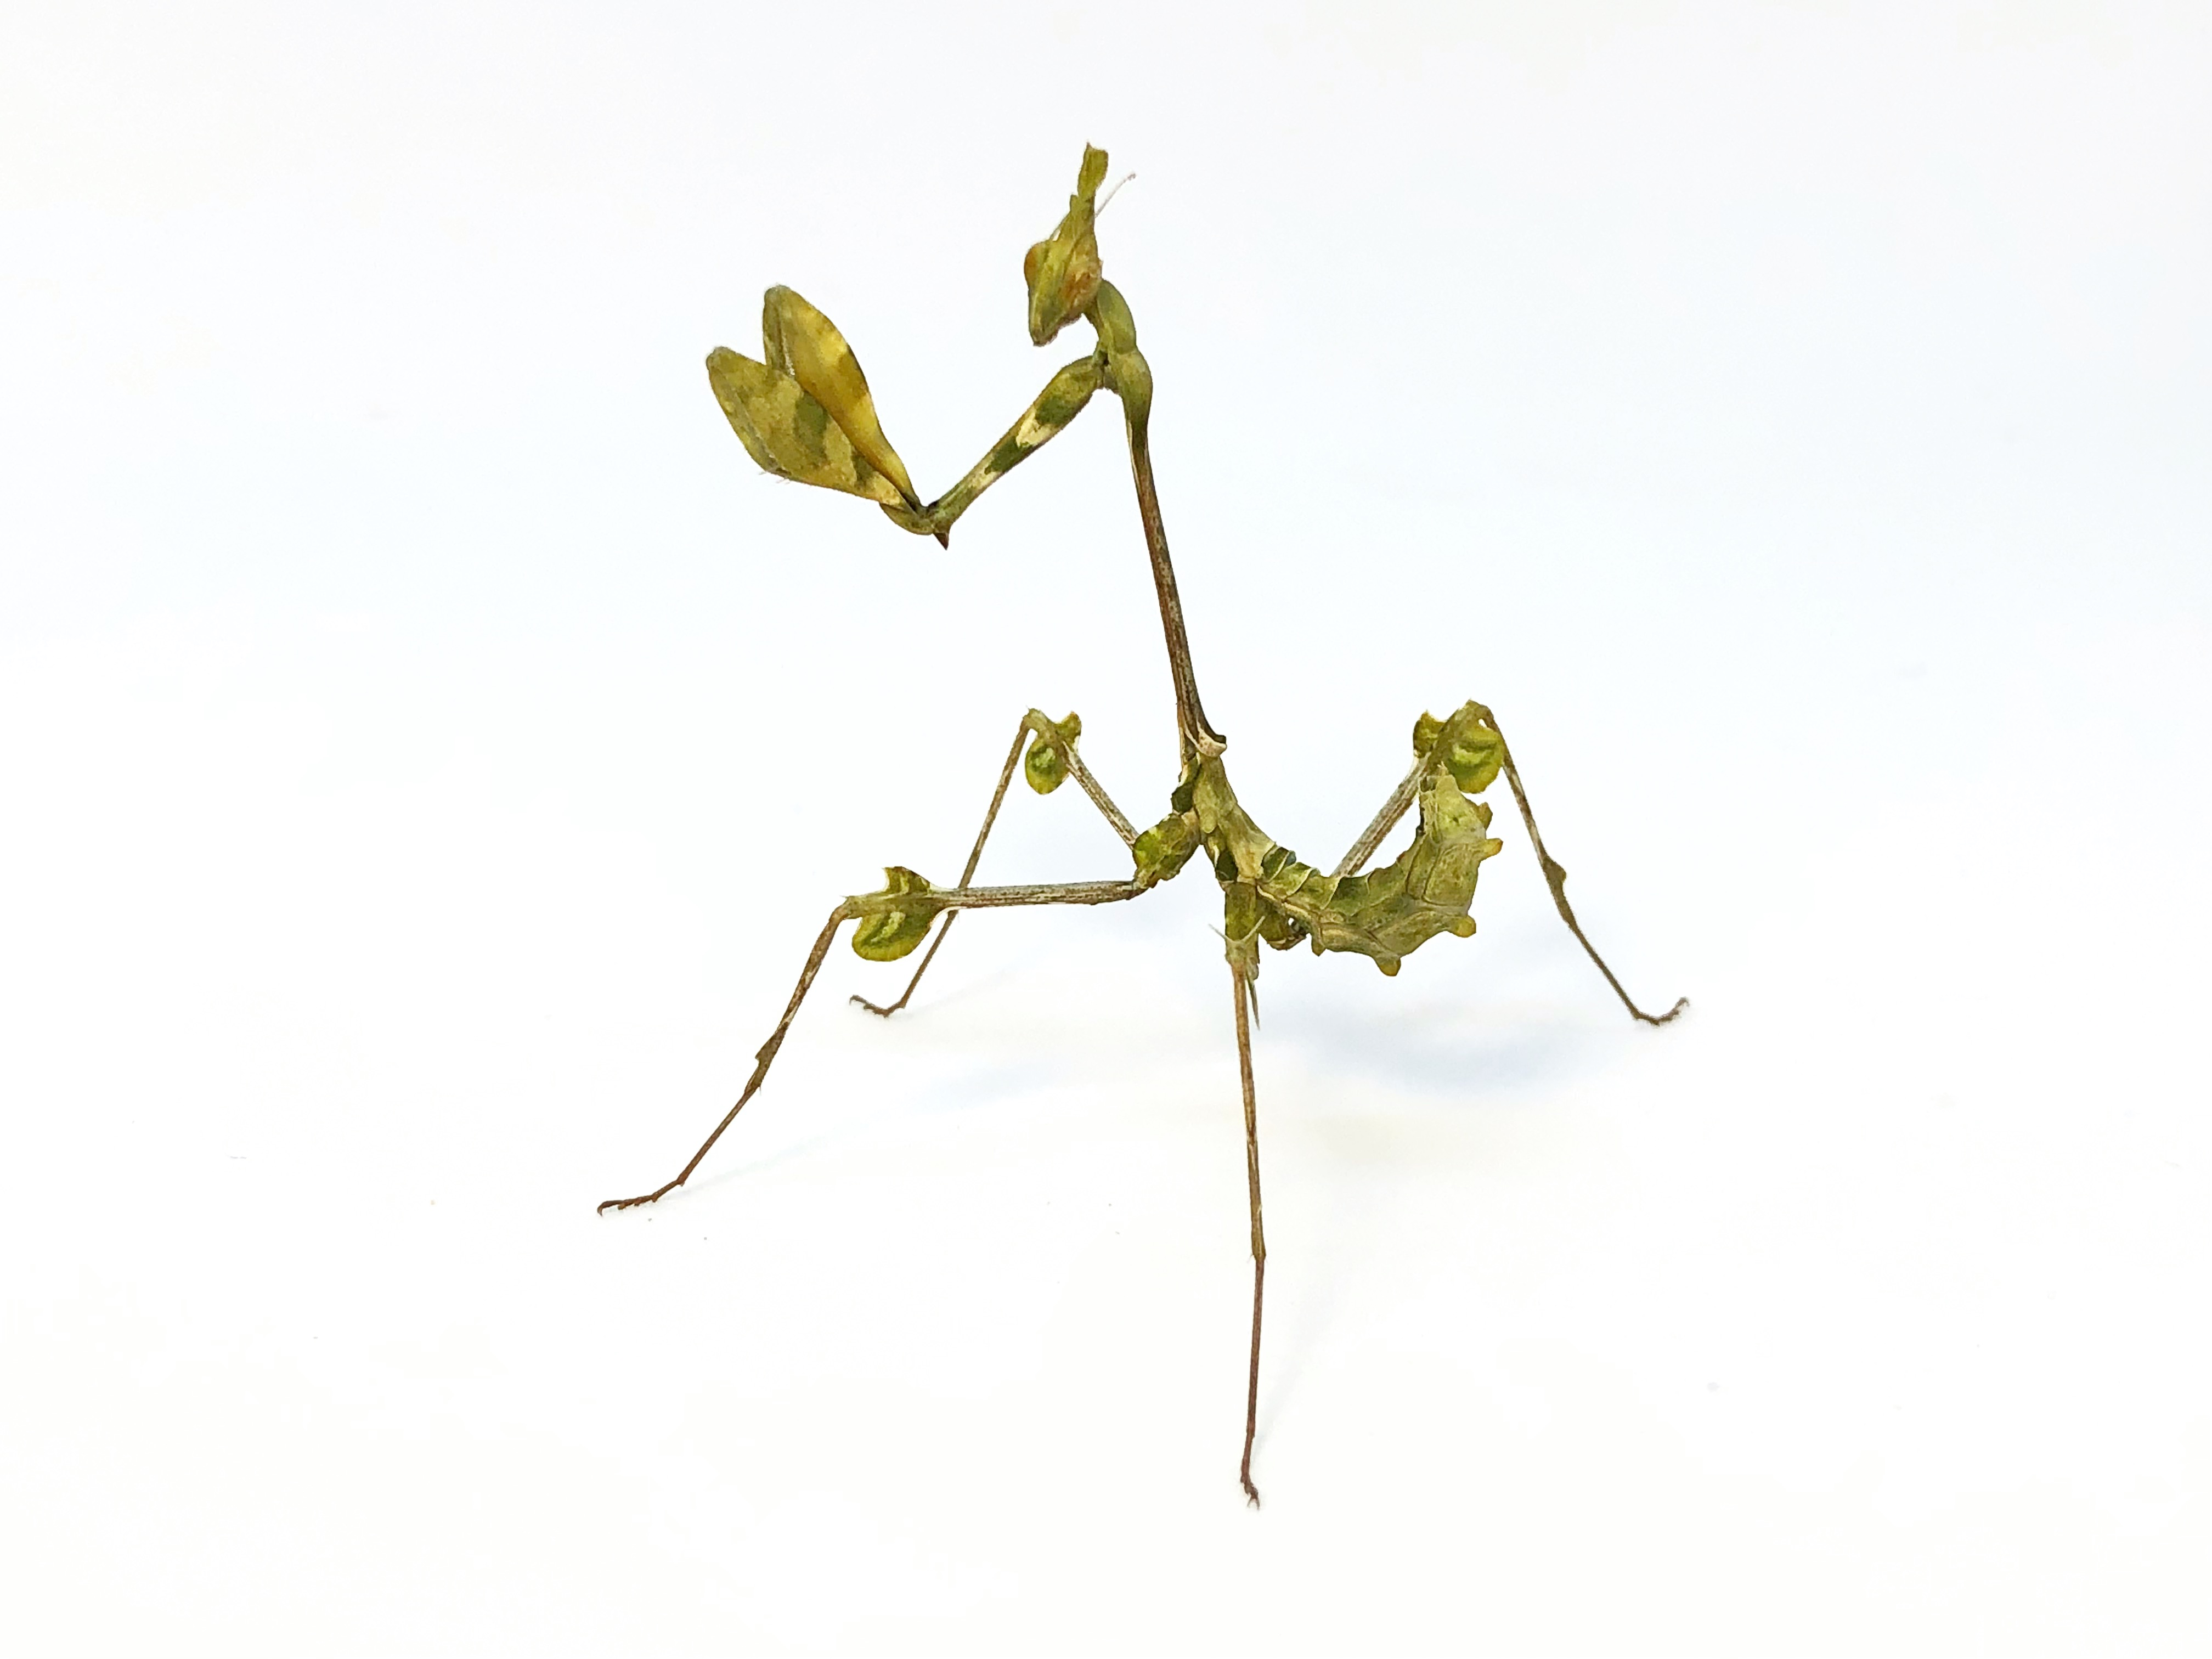 https://prayingmantis.ru/wp-content/uploads/2018/10/Gongylus-gongylodes-presubadult-female-2.jpg